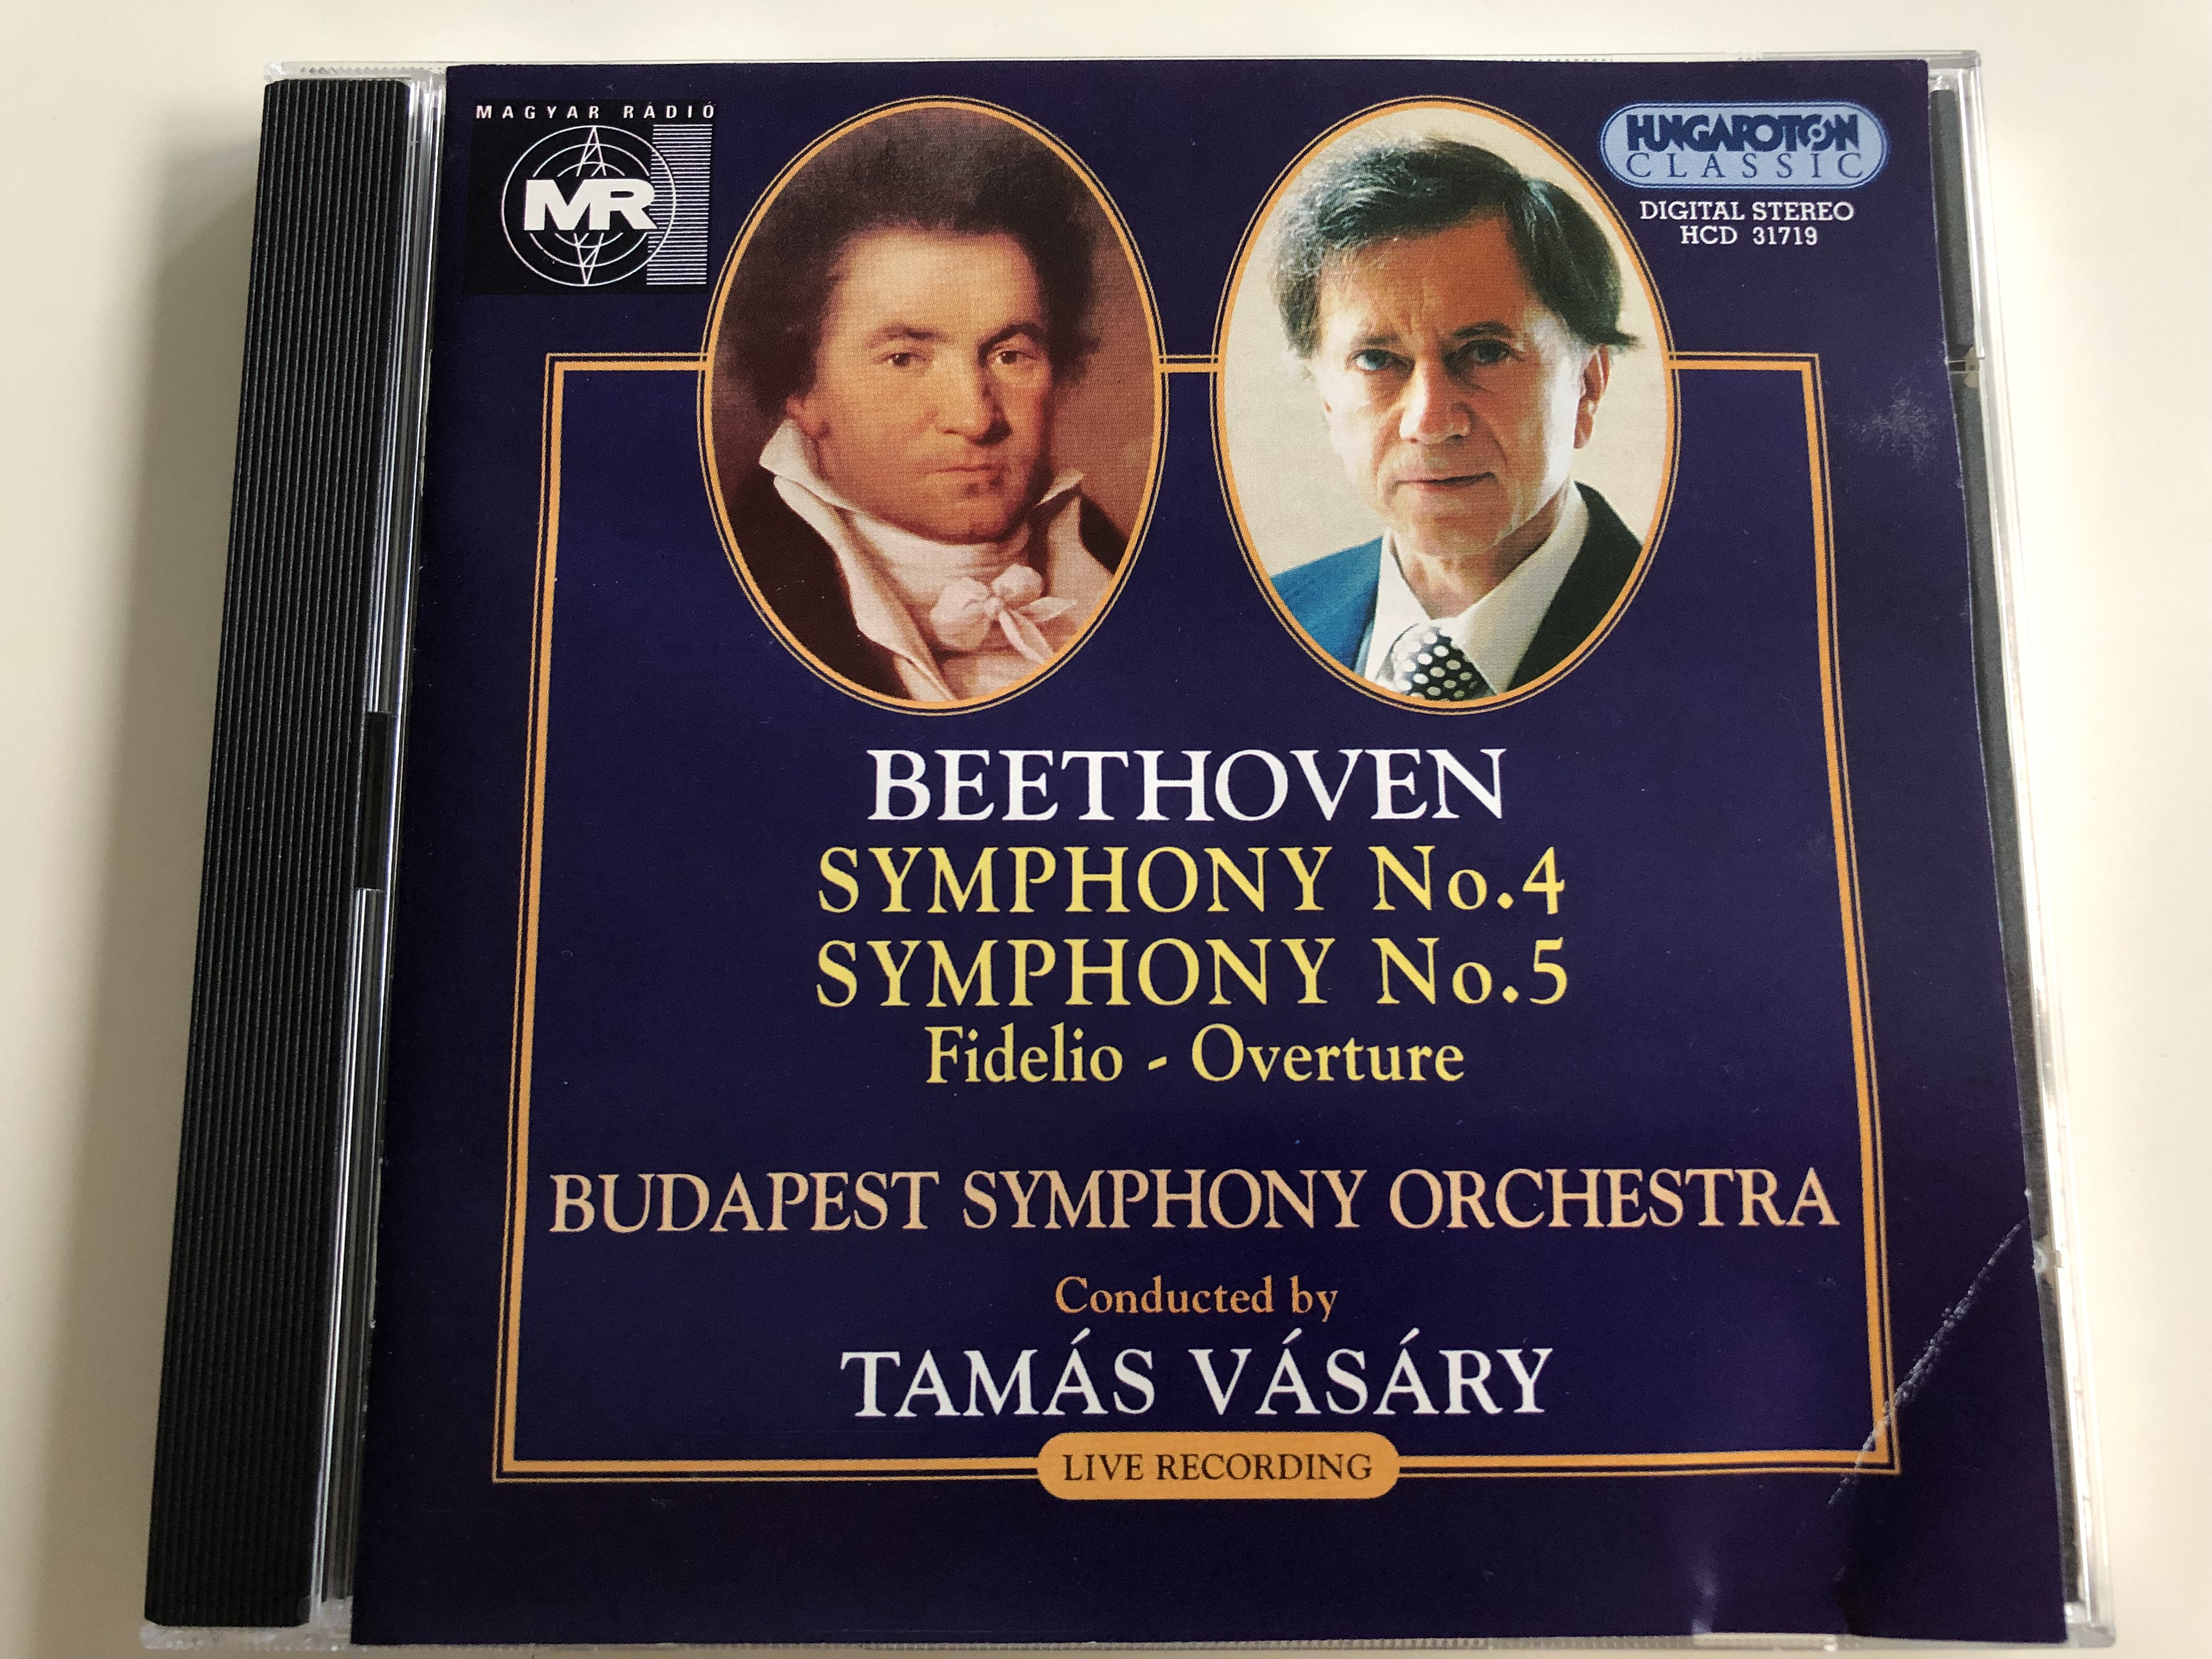 beethoven-symphony-no.-4-no-5-fidelio-overture-budapest-symphony-orchestra-conducted-by-tam-s-v-s-ry-live-recording-hungaroton-classic-audio-cd-1997-hcd-31719-1-.jpg